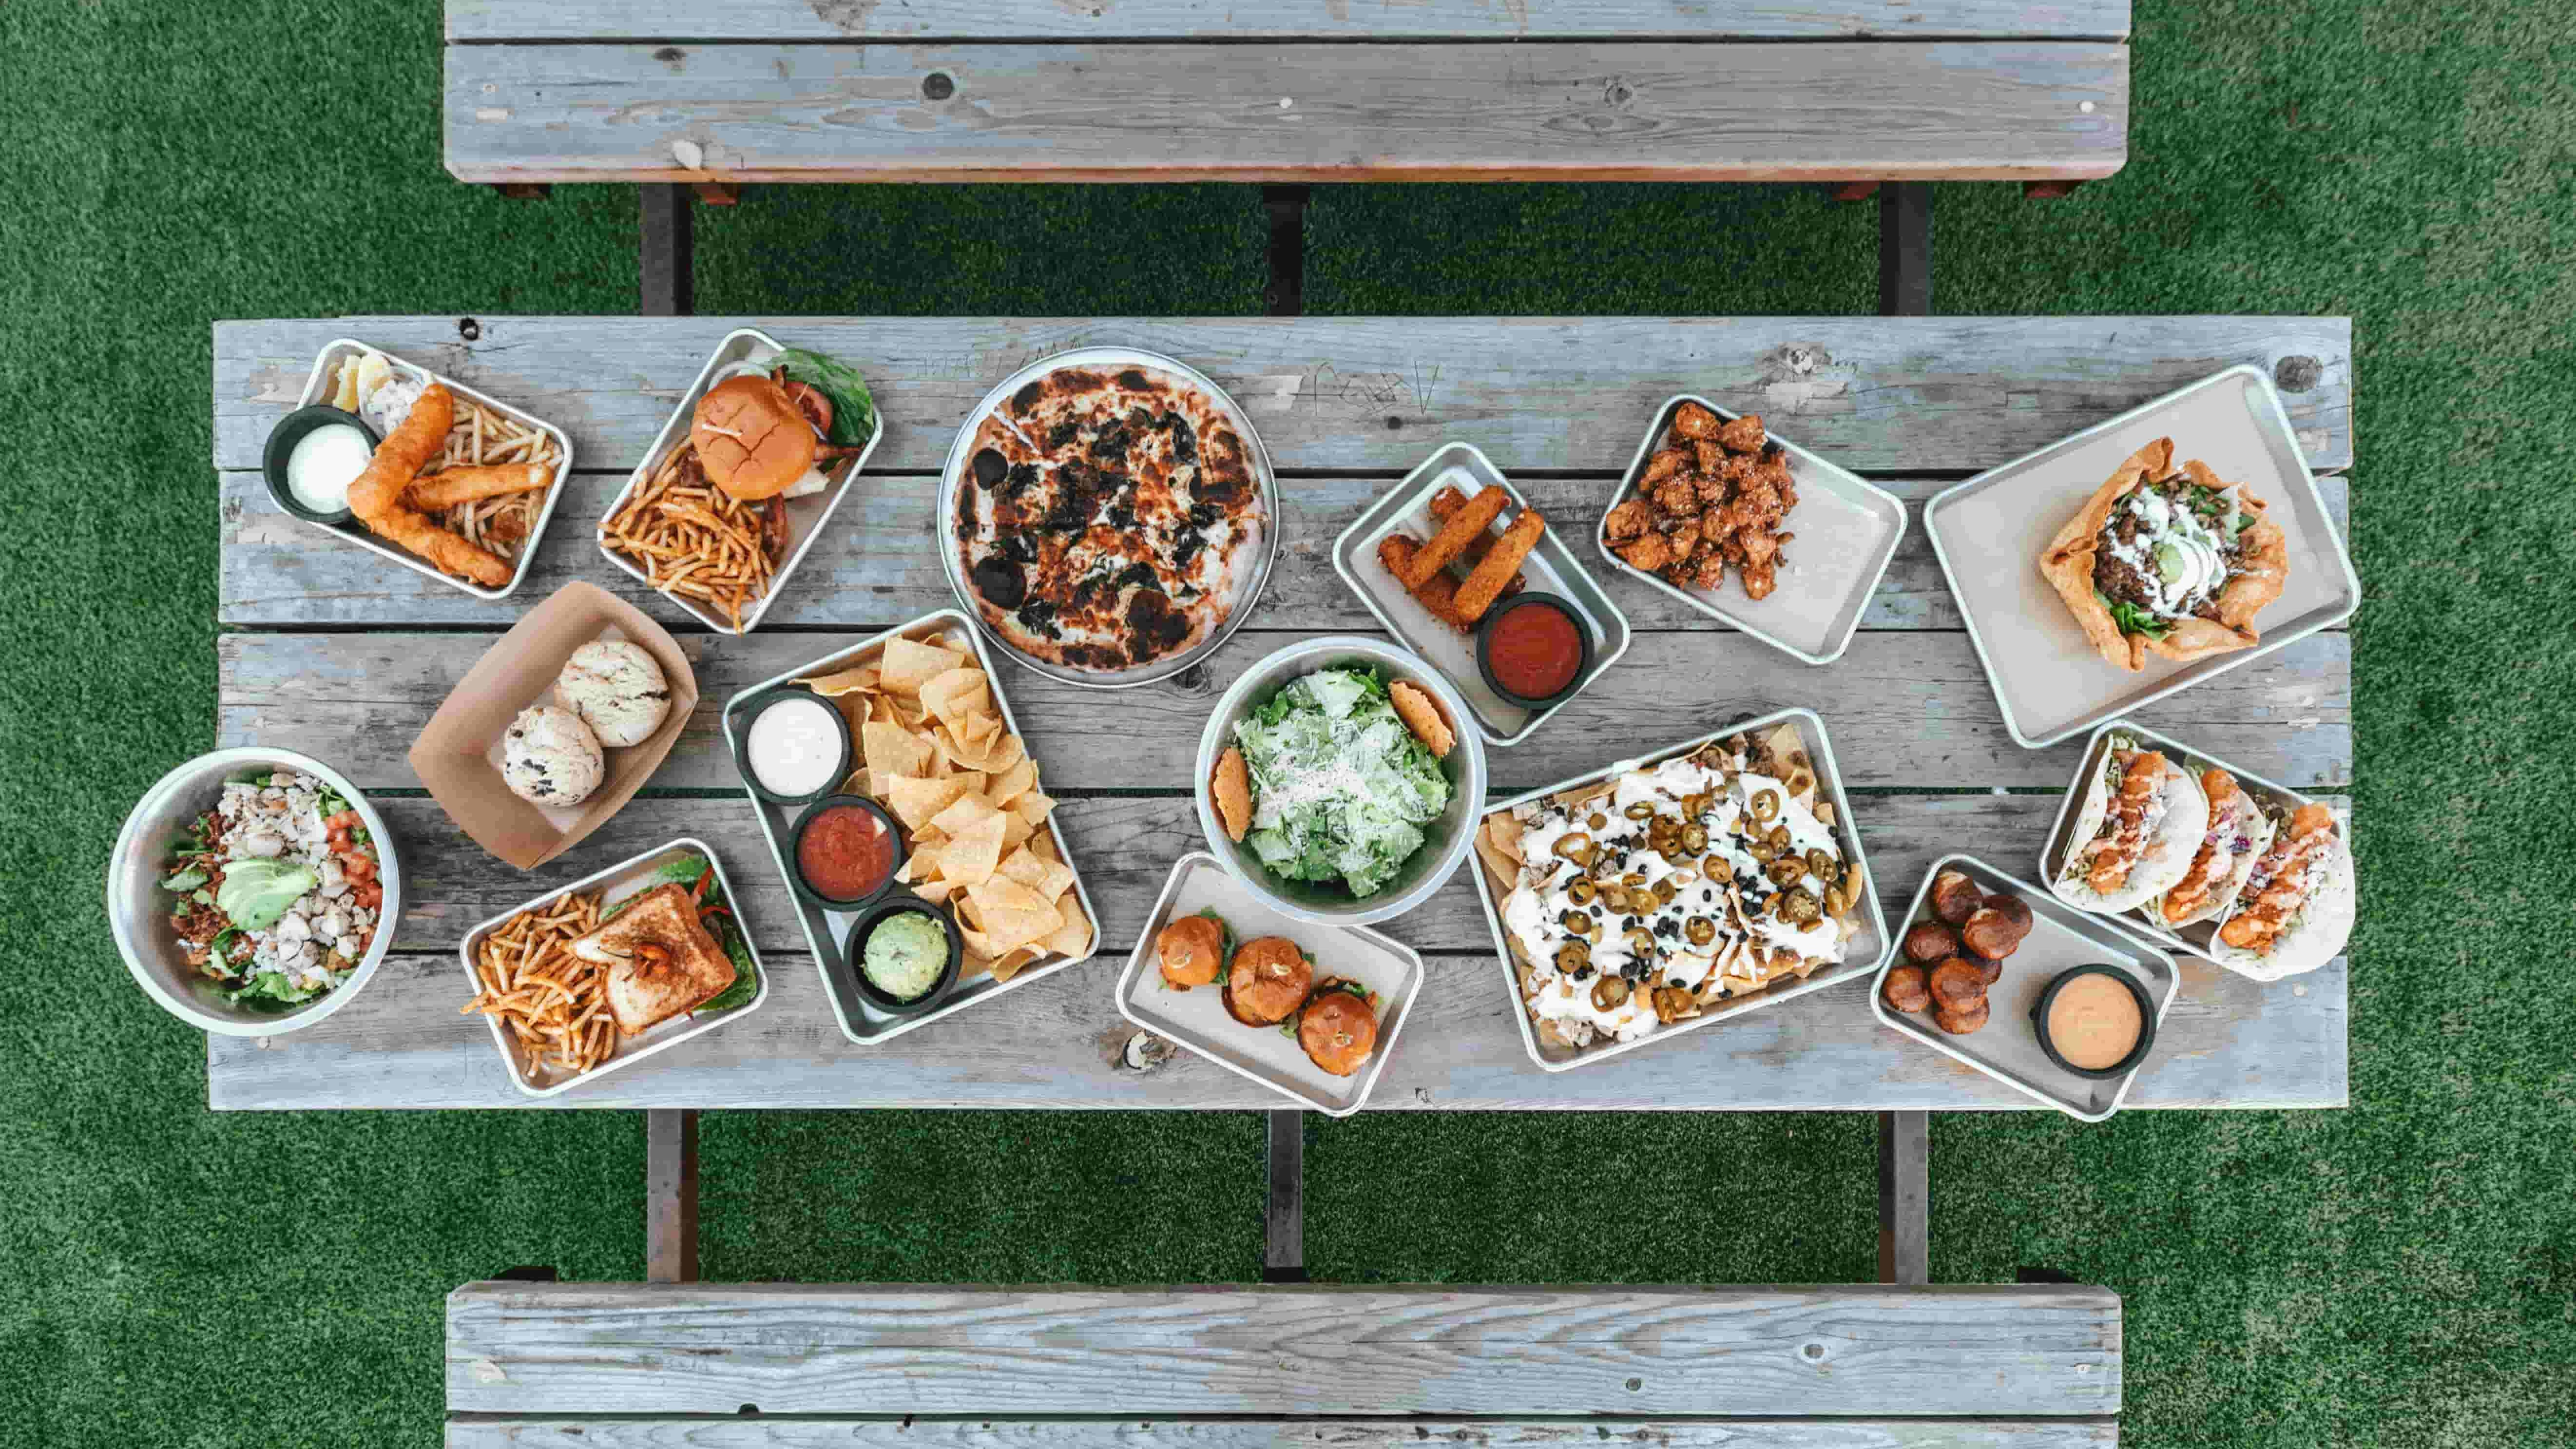 10 things to consider when starting a food or drink business